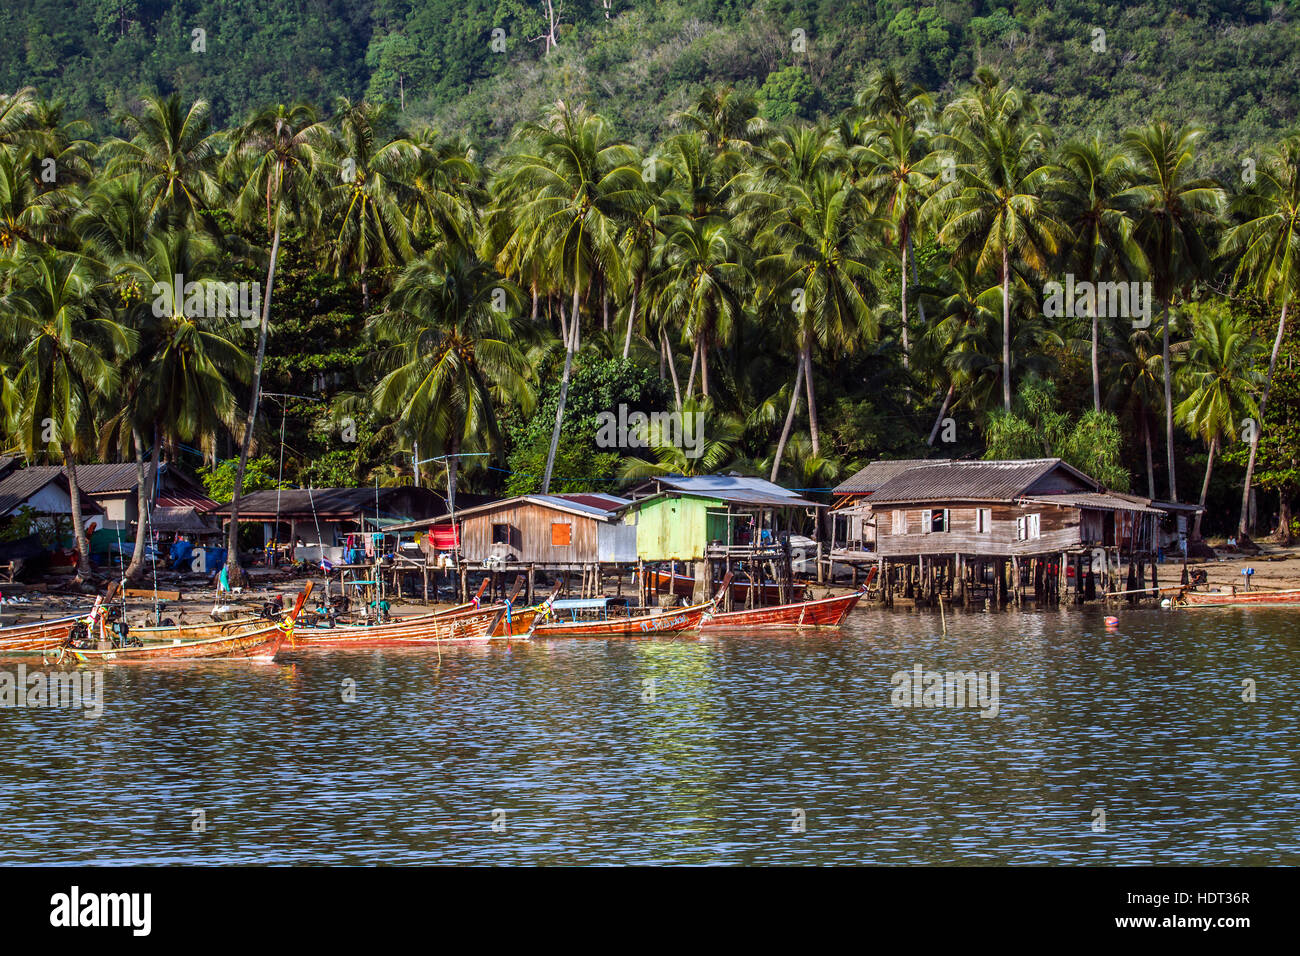 Traditional fisherman village in Koh Muk island, Thailand - Stock Image